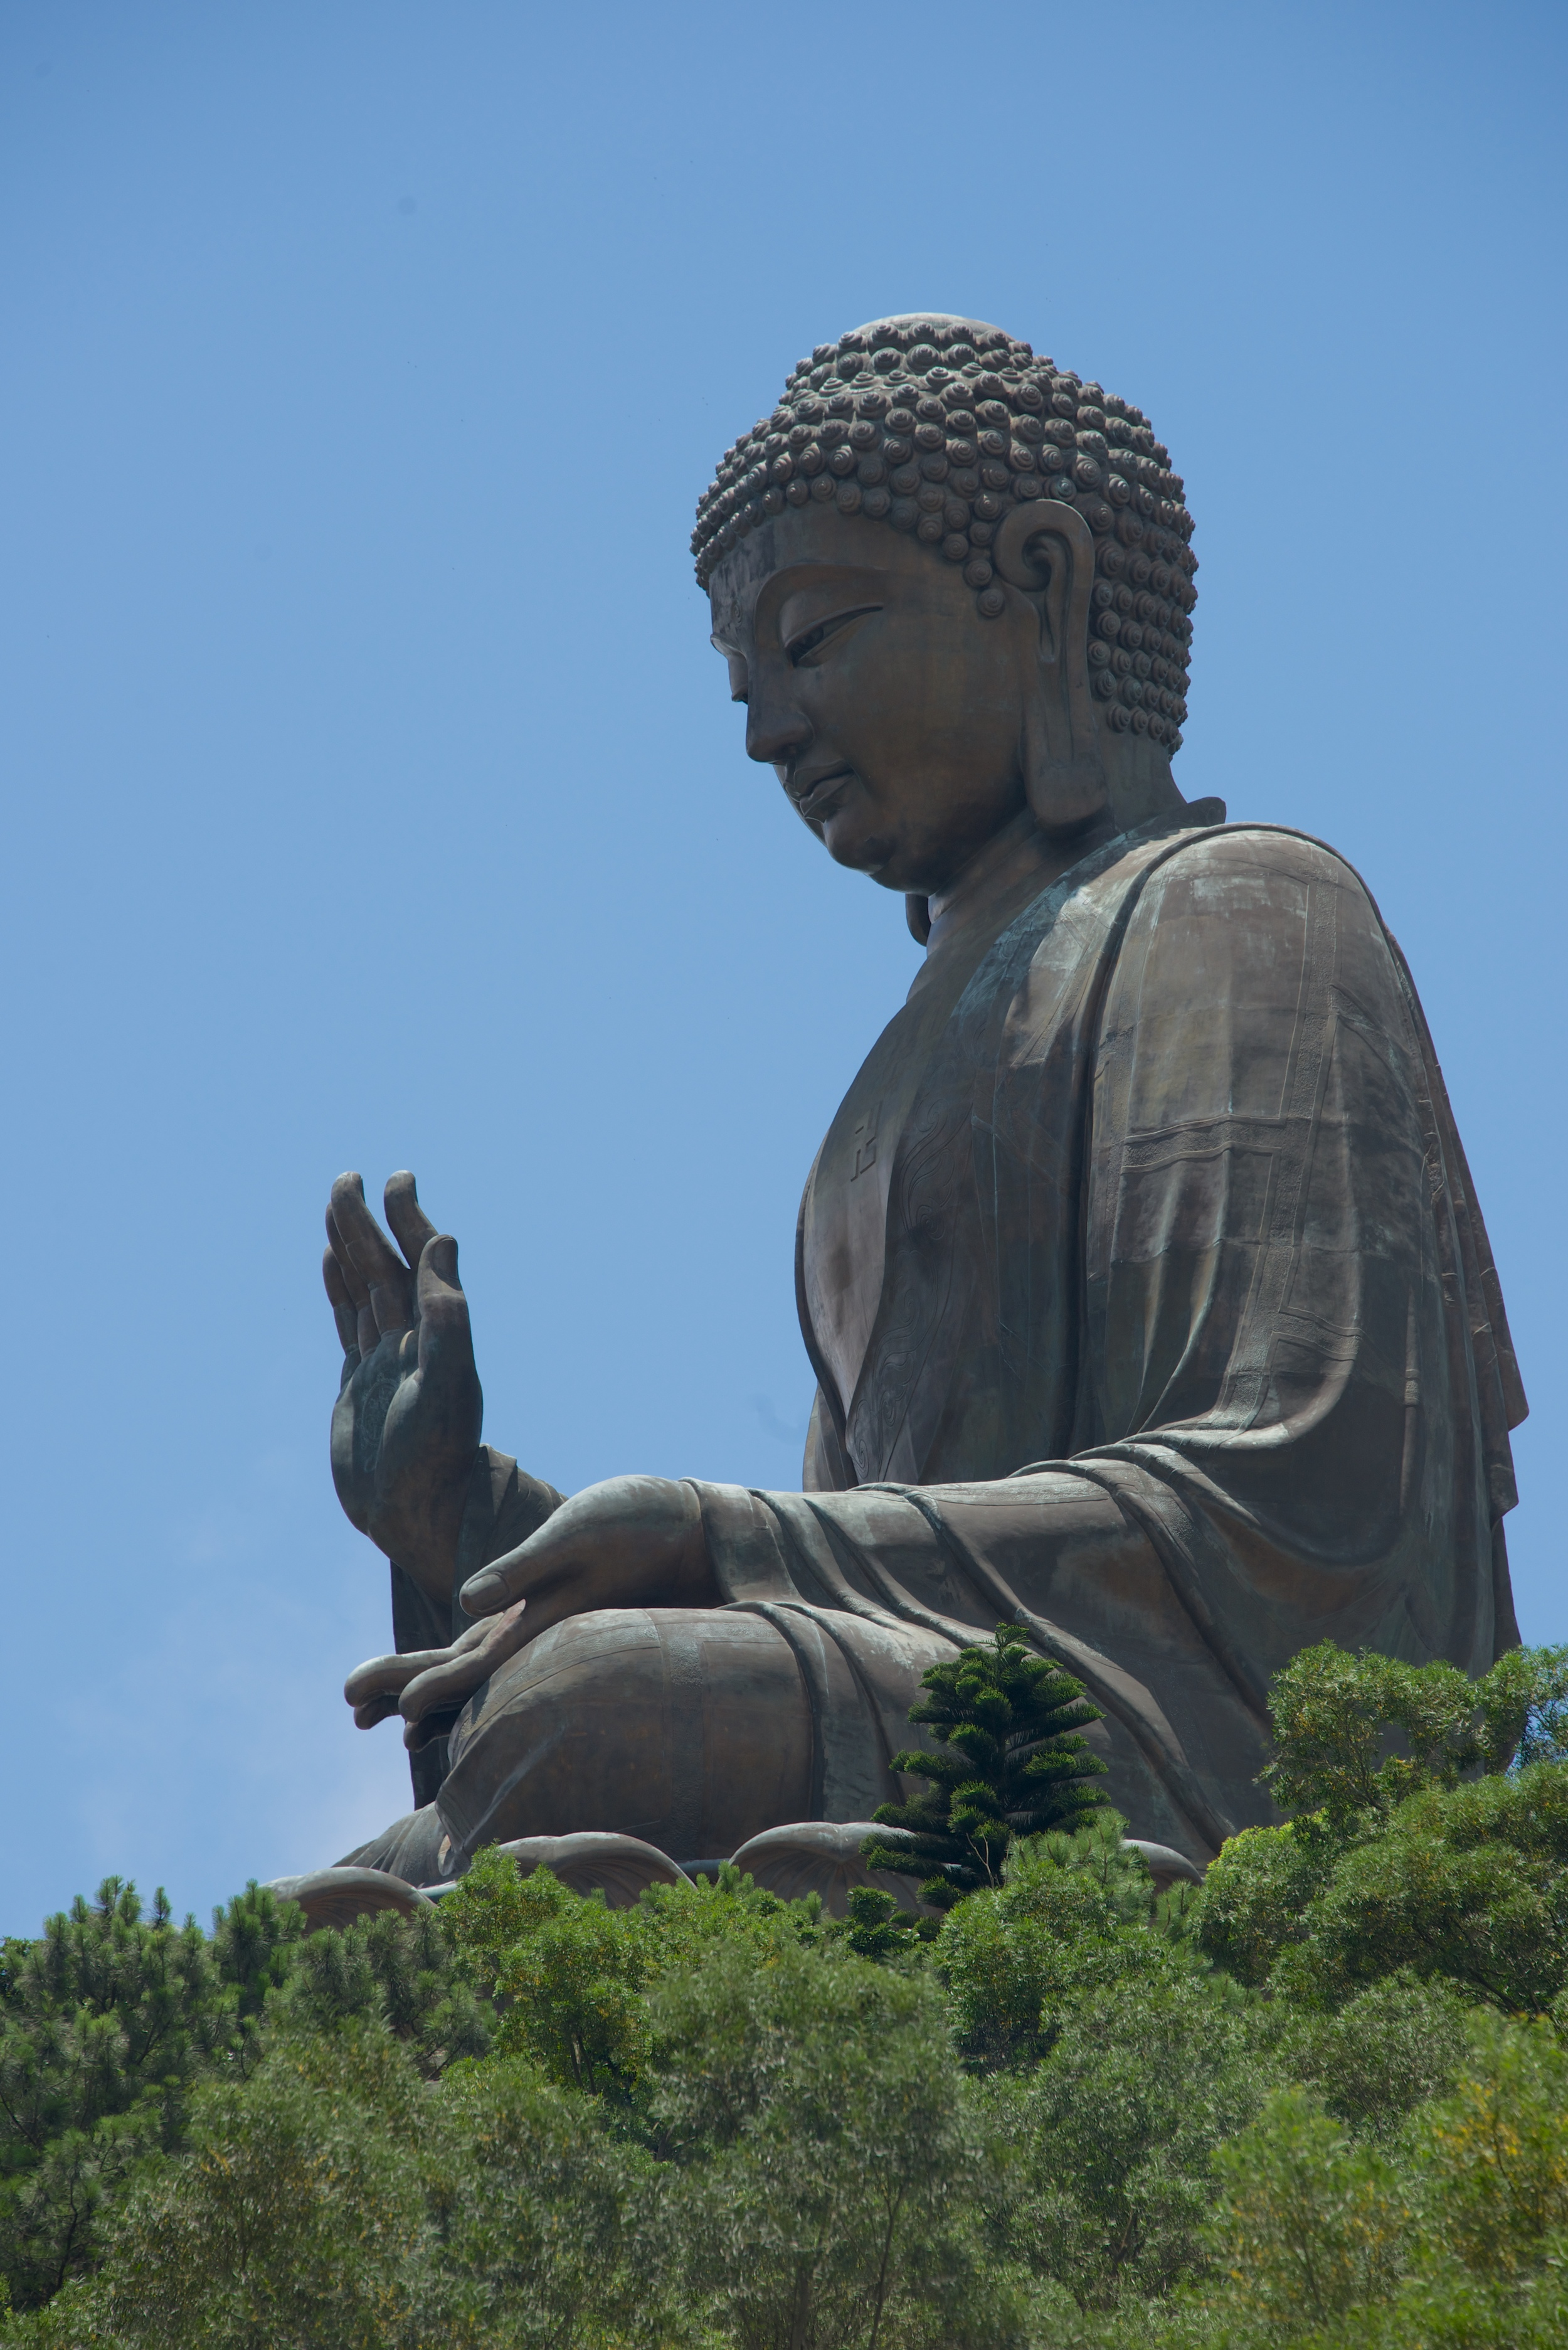 Big Buddha in profile